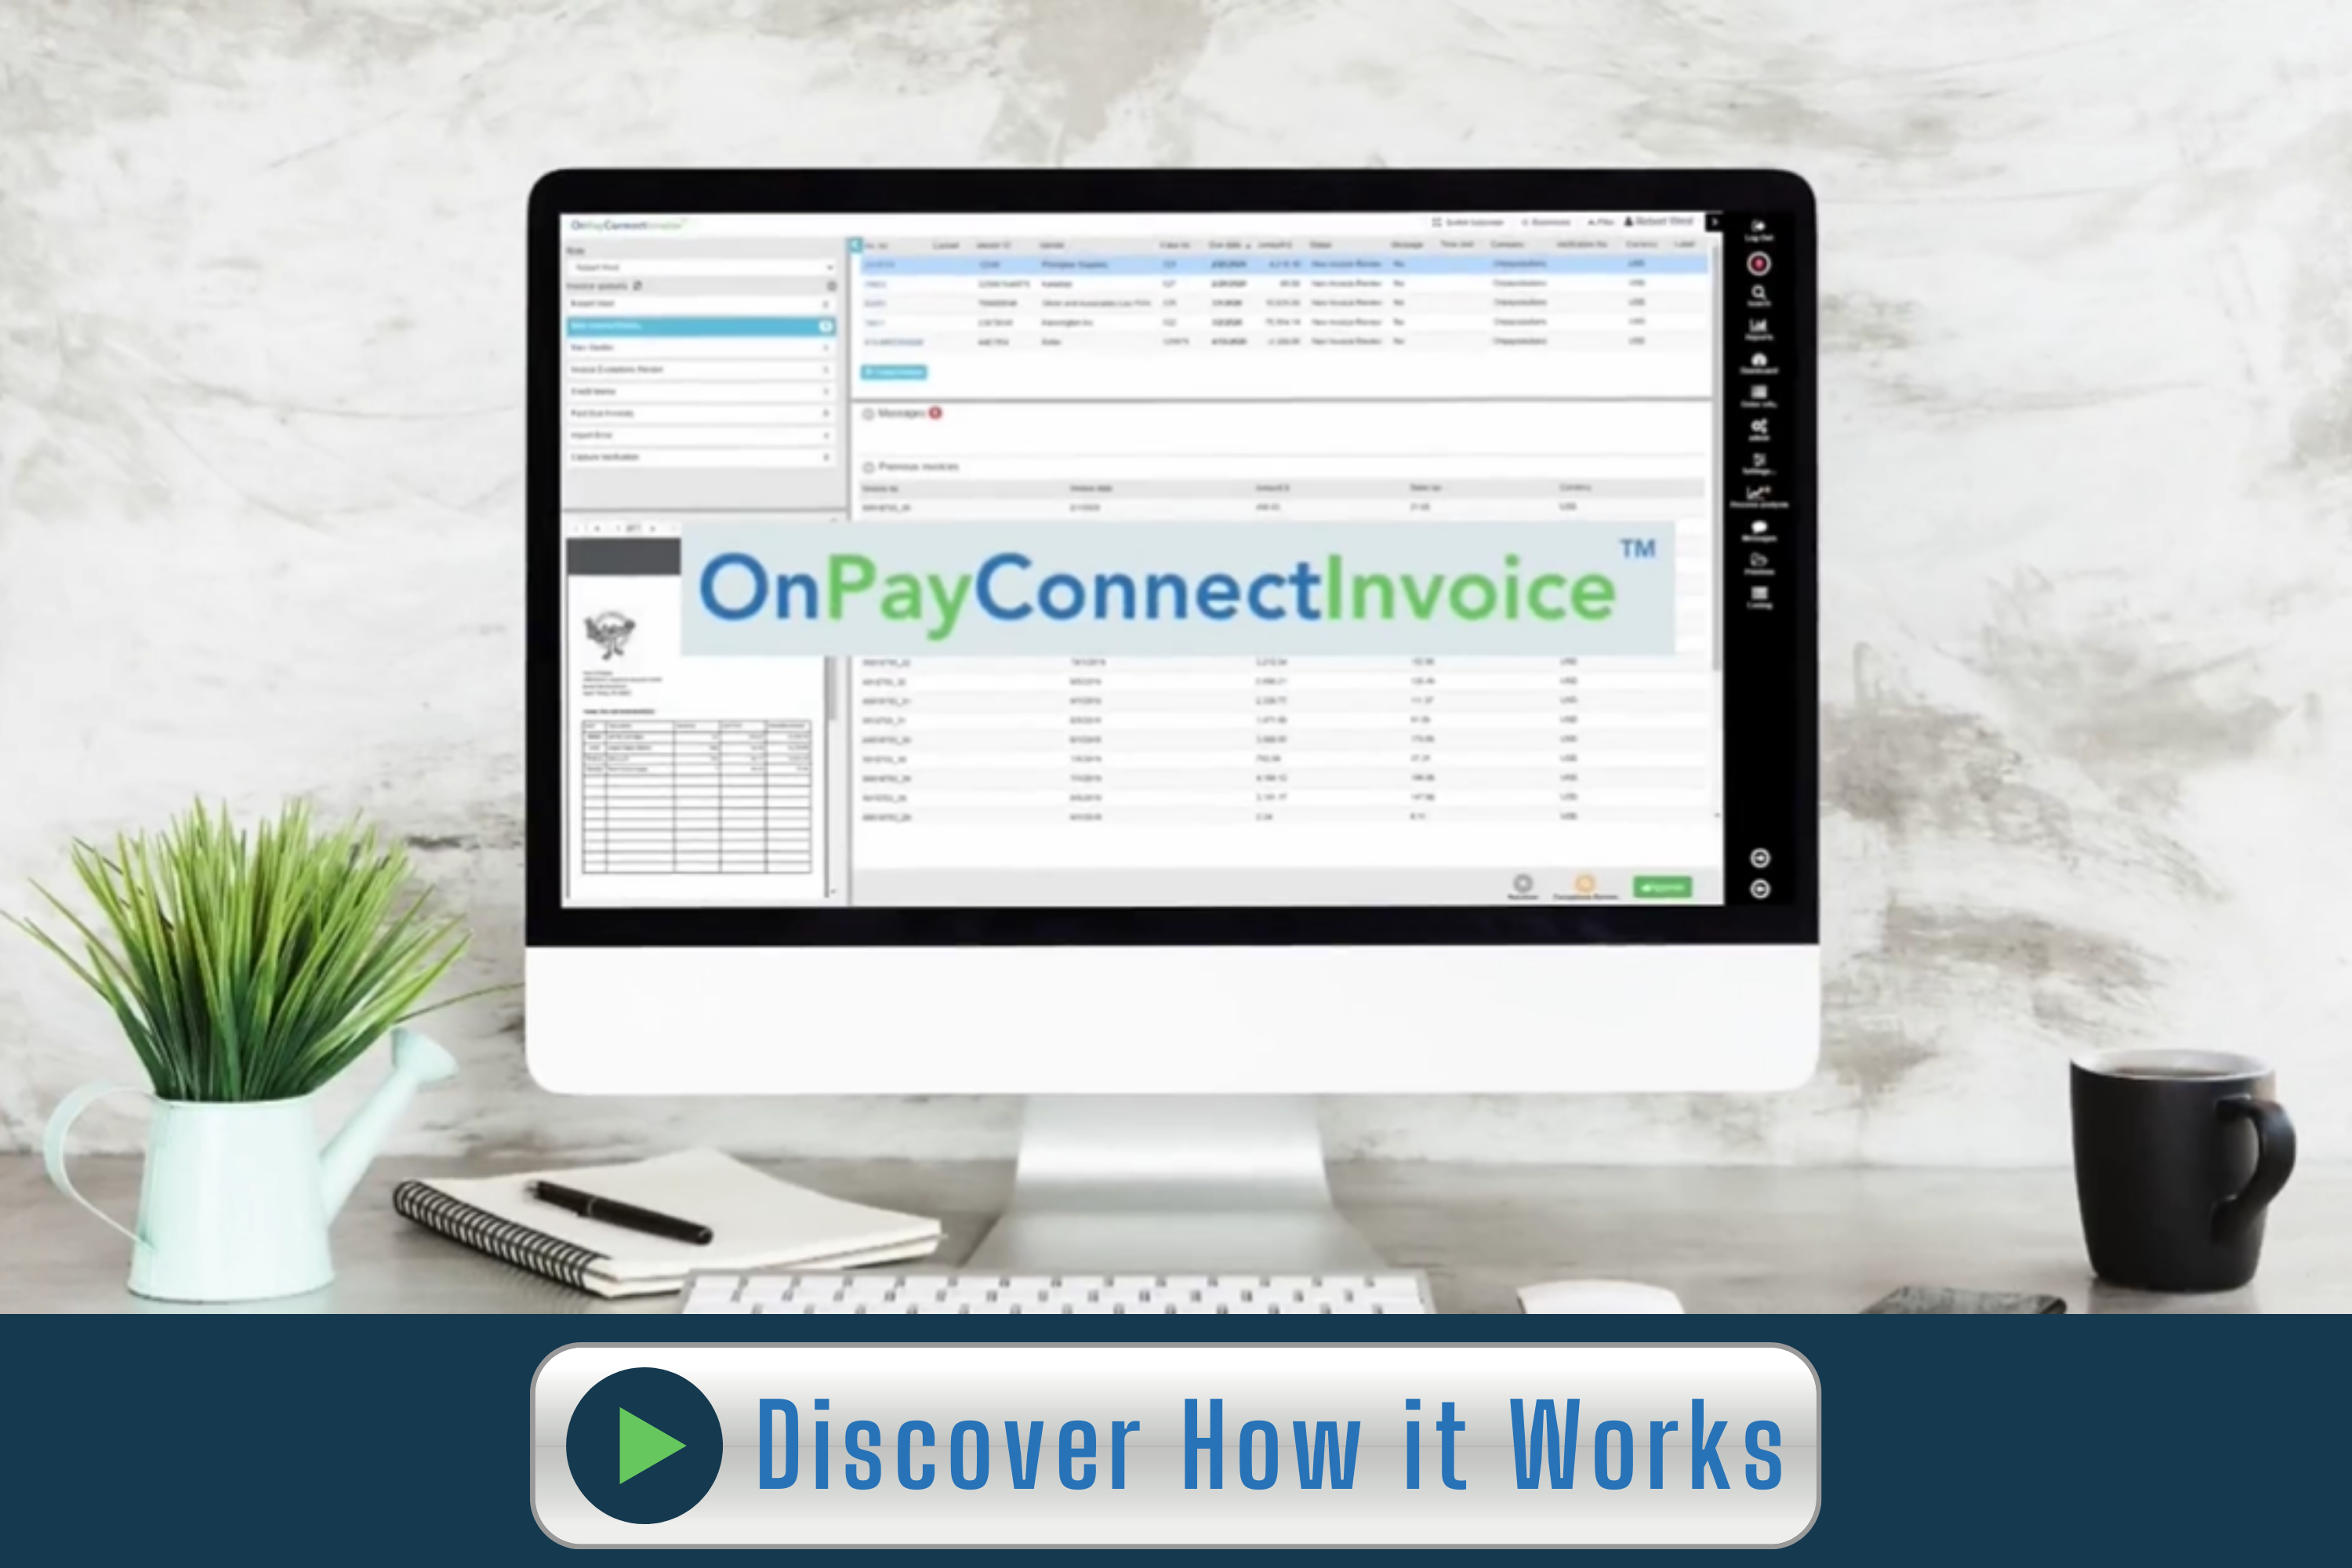 Invoice-automation-explainer-video-thumbnail-click-through-and-watch-to-discover-how-onpay-connect-invoice-works